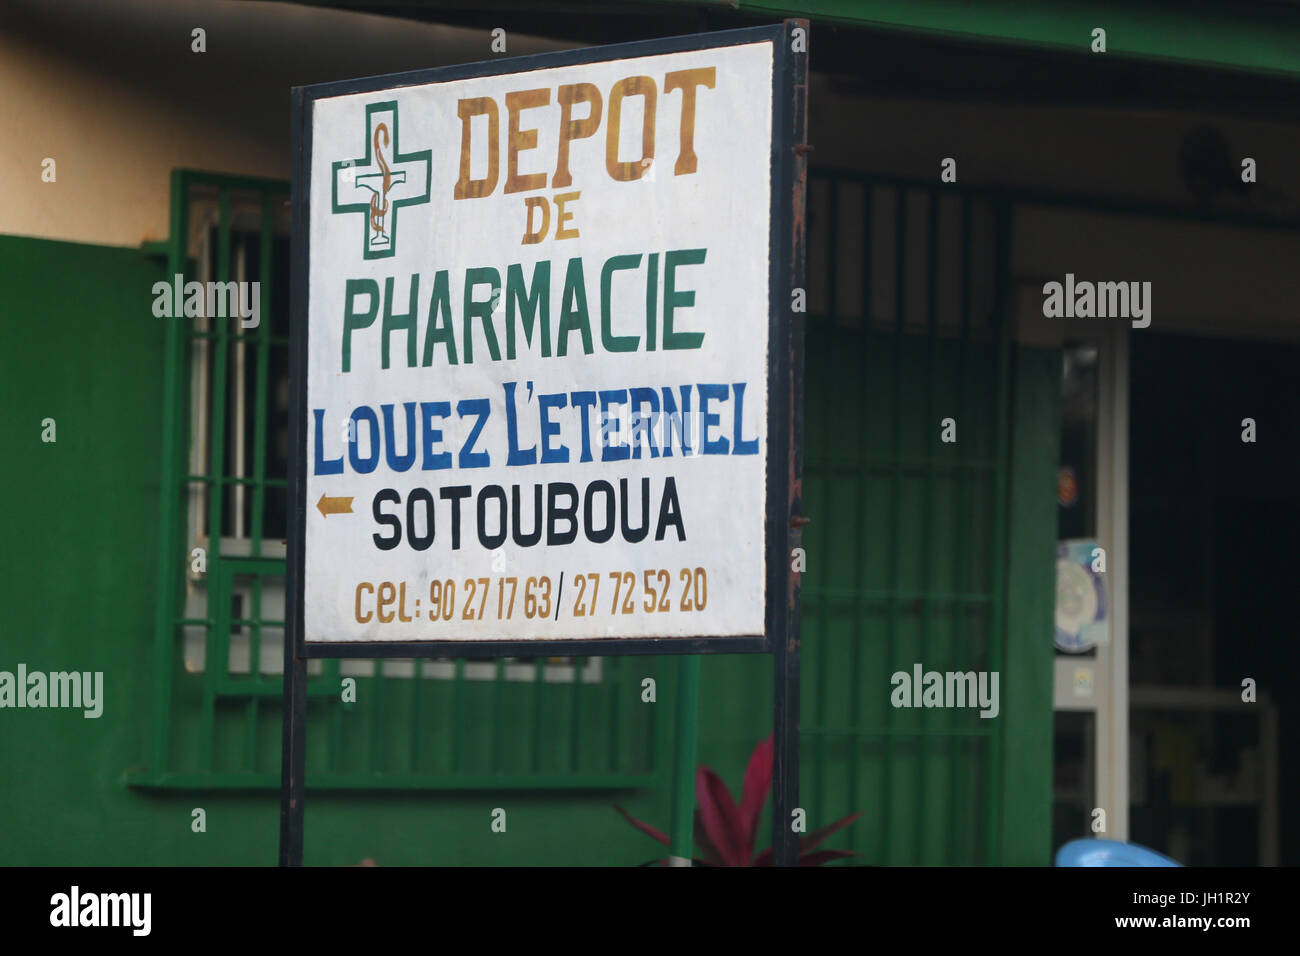 Africa. Pharmacy. Togo. Stock Photo